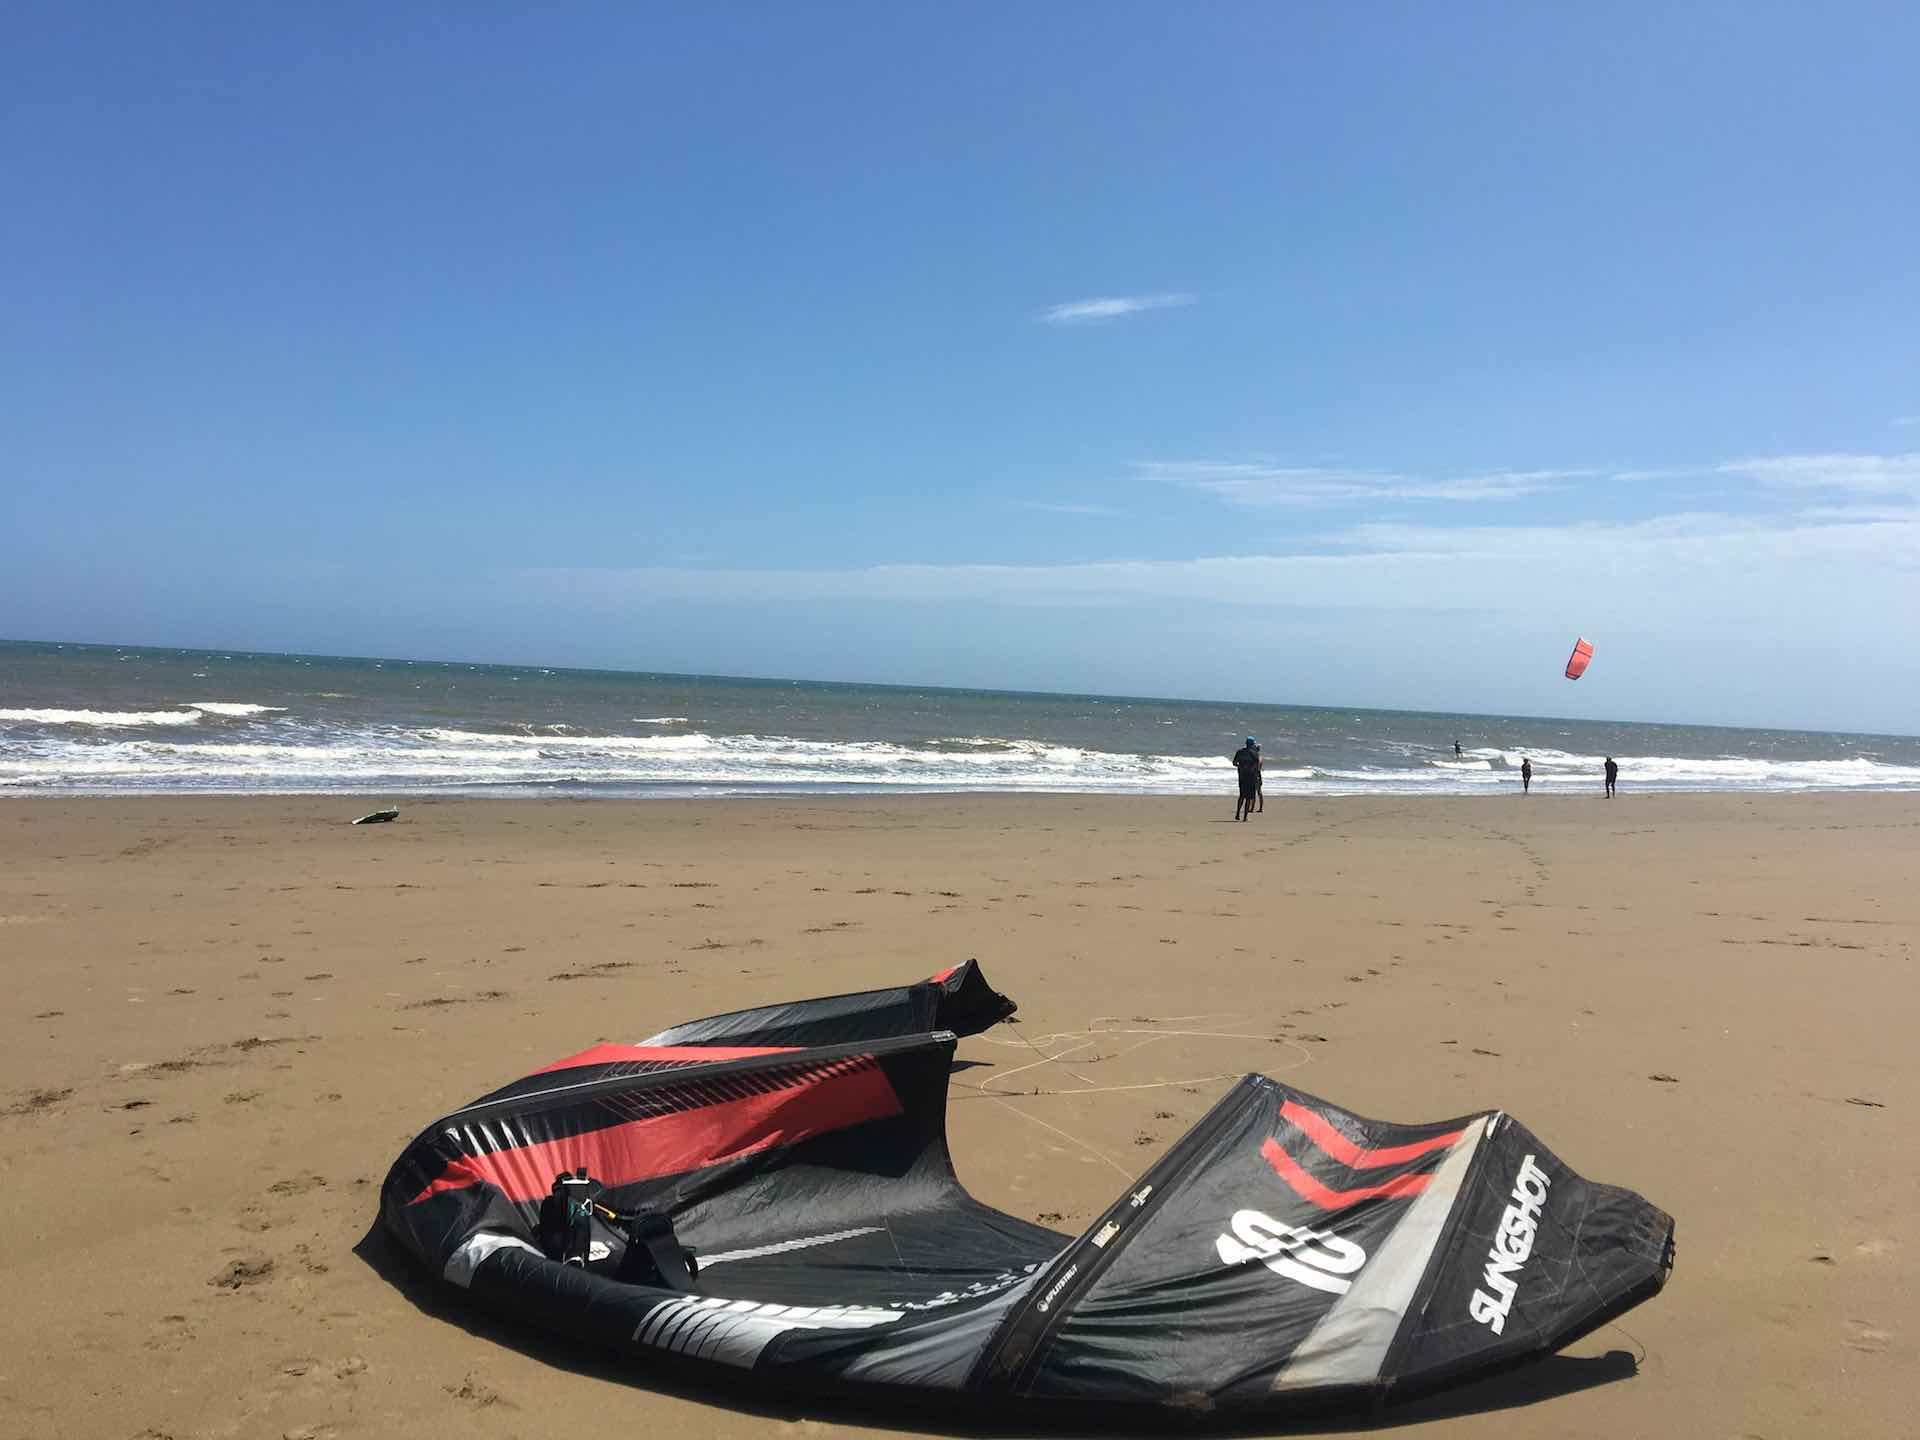 Playa El Arenal, Pedasi: A fantastic wide beach (at low tide) with great waves offers a perfect spot for kitesurfing.